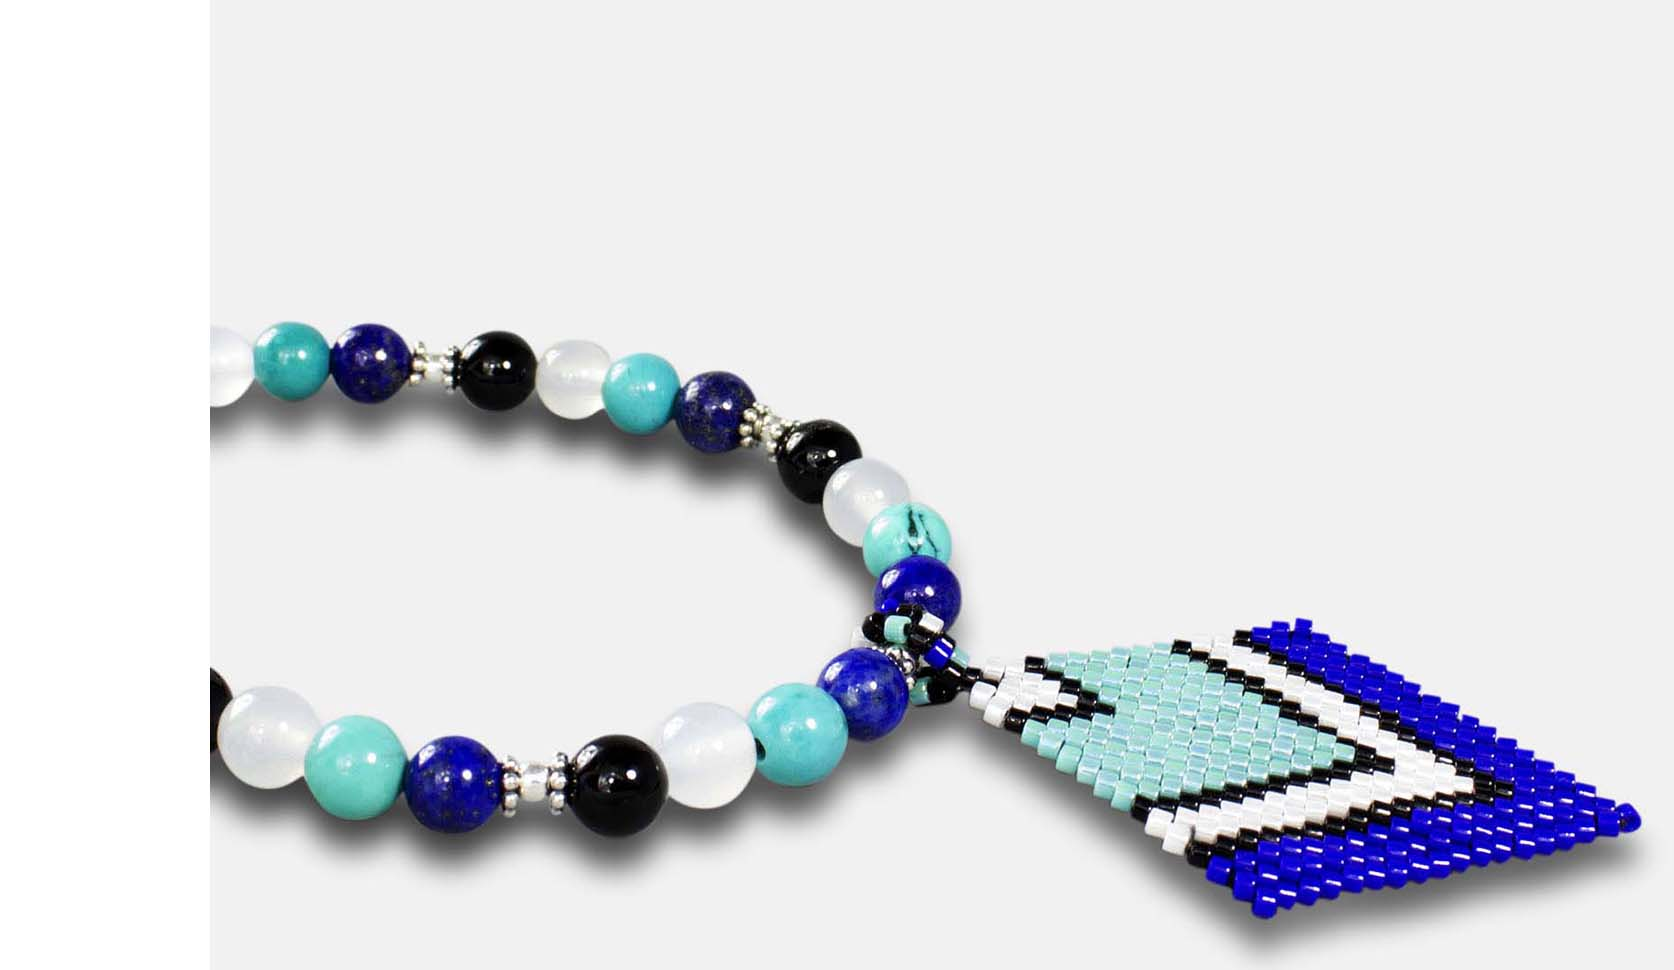 Customizable bead necklace set